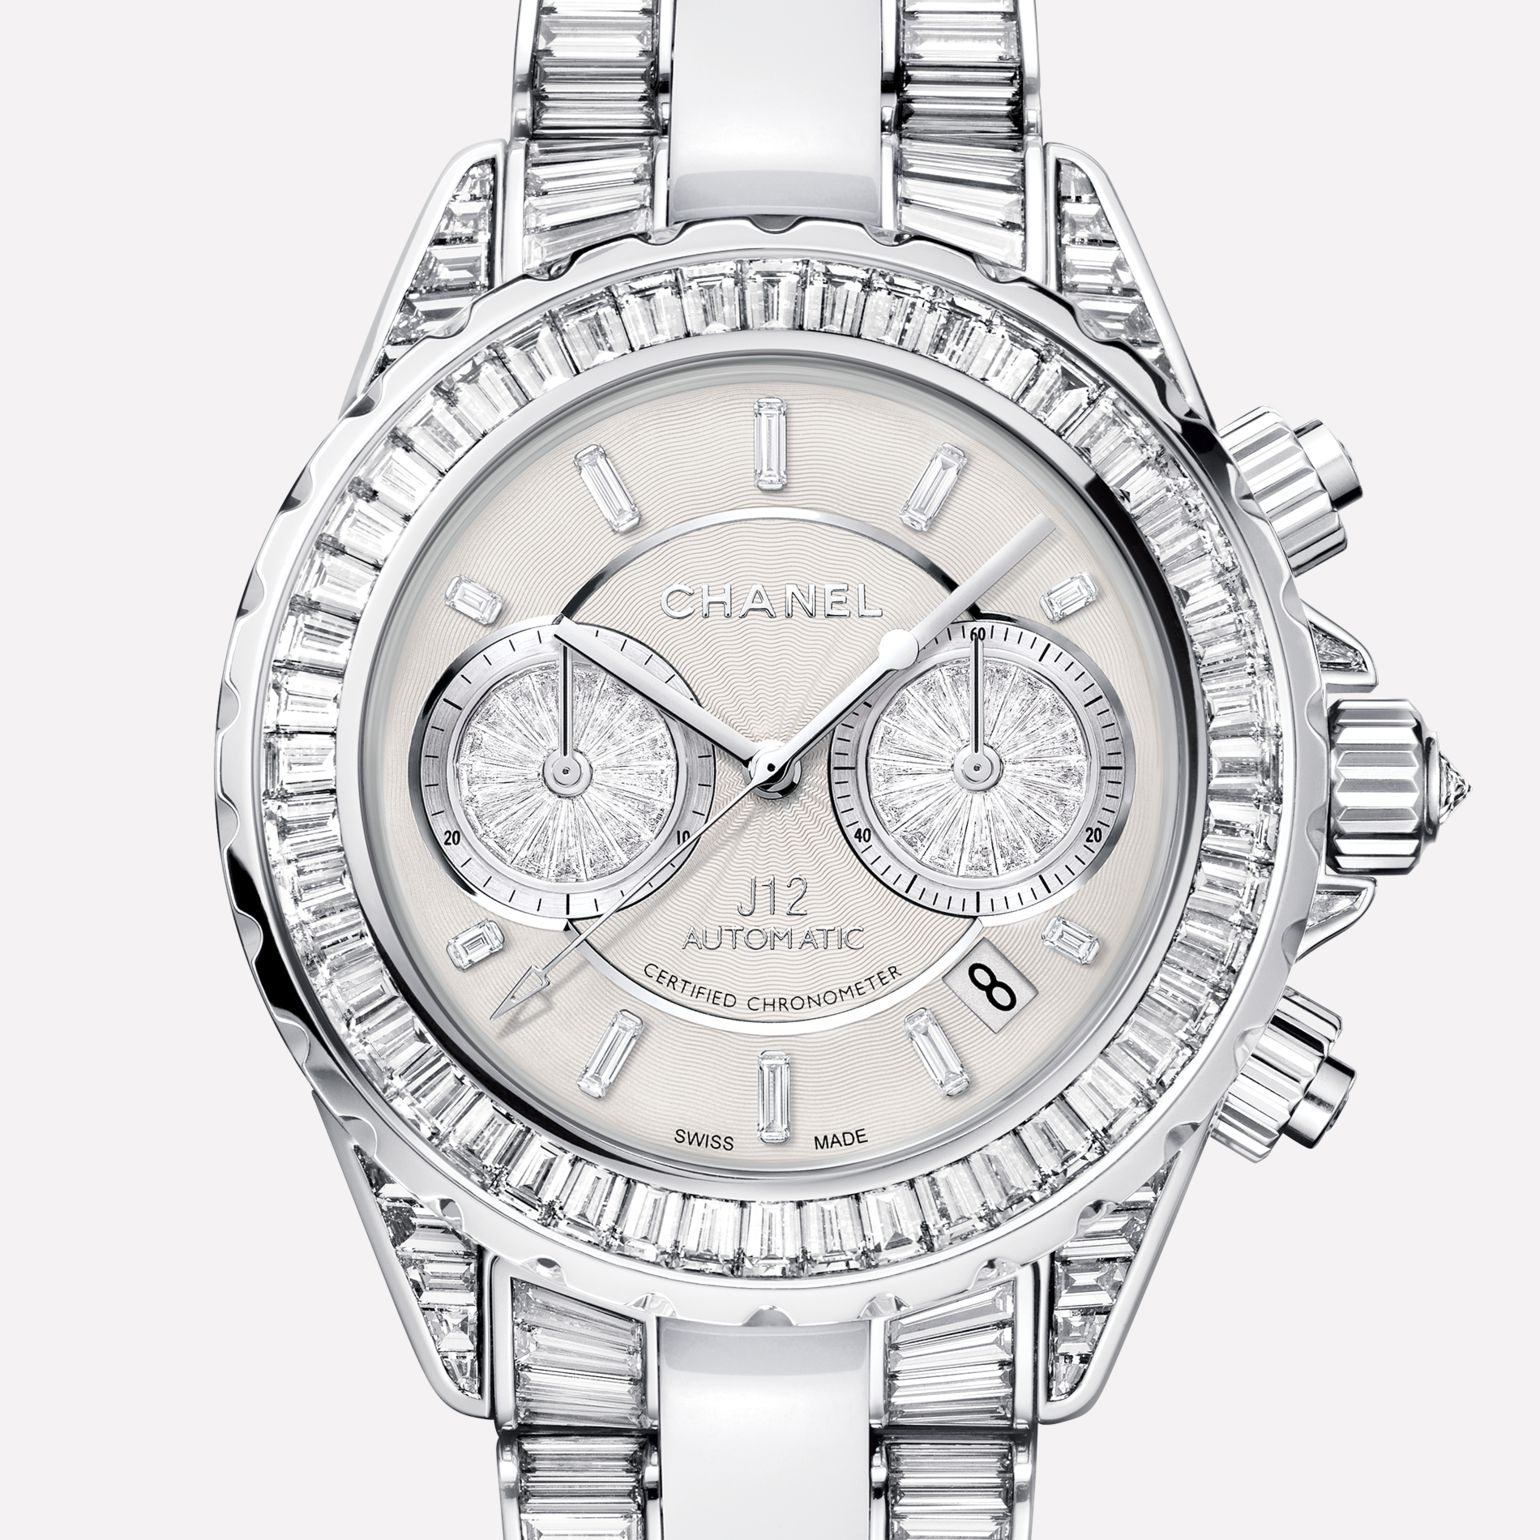 J12 High Jewelry Watch Chronograph, white gold and white ceramic, case, dial, bezel and bracelet set with baguette-cut diamonds